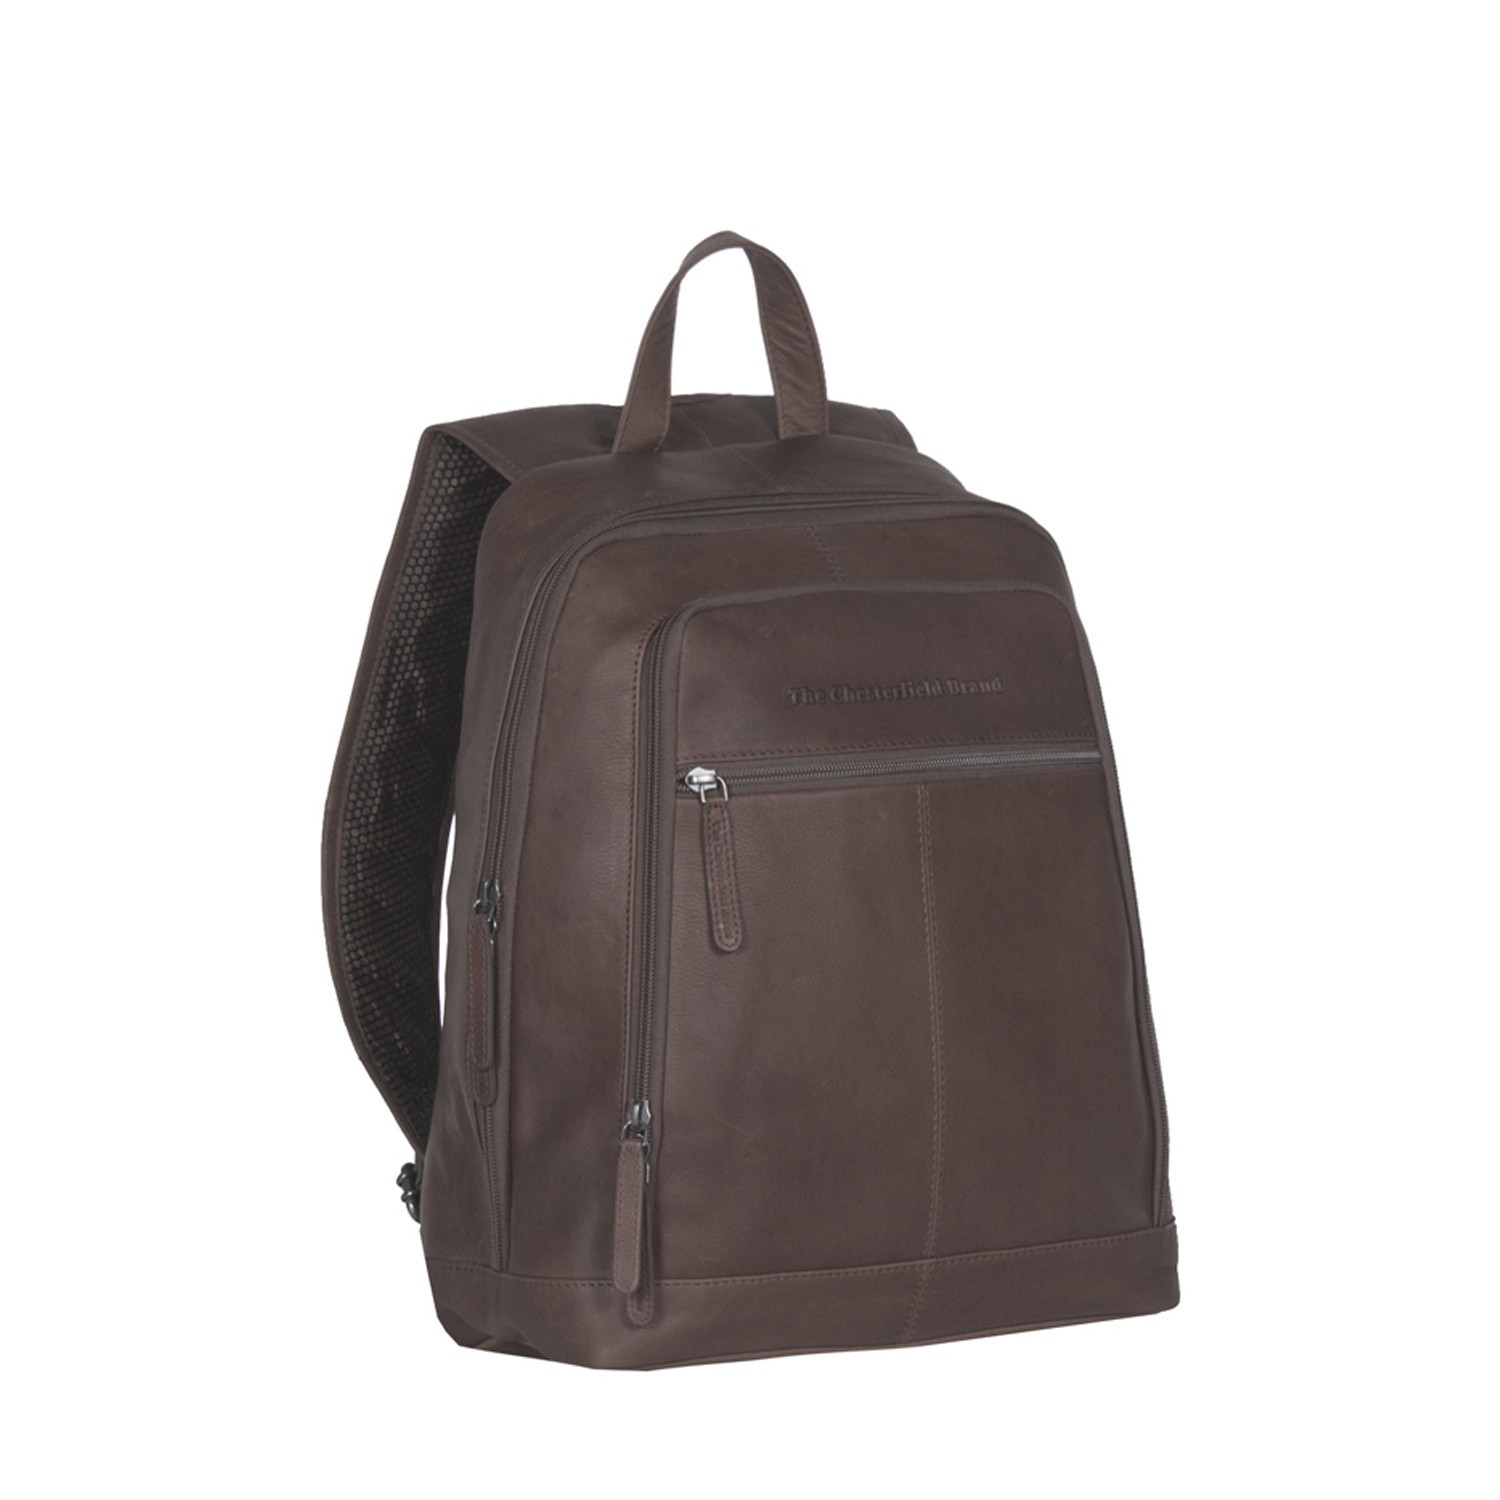 Chesterfield Laptop Rugzak 'James' C58.0155 Brown